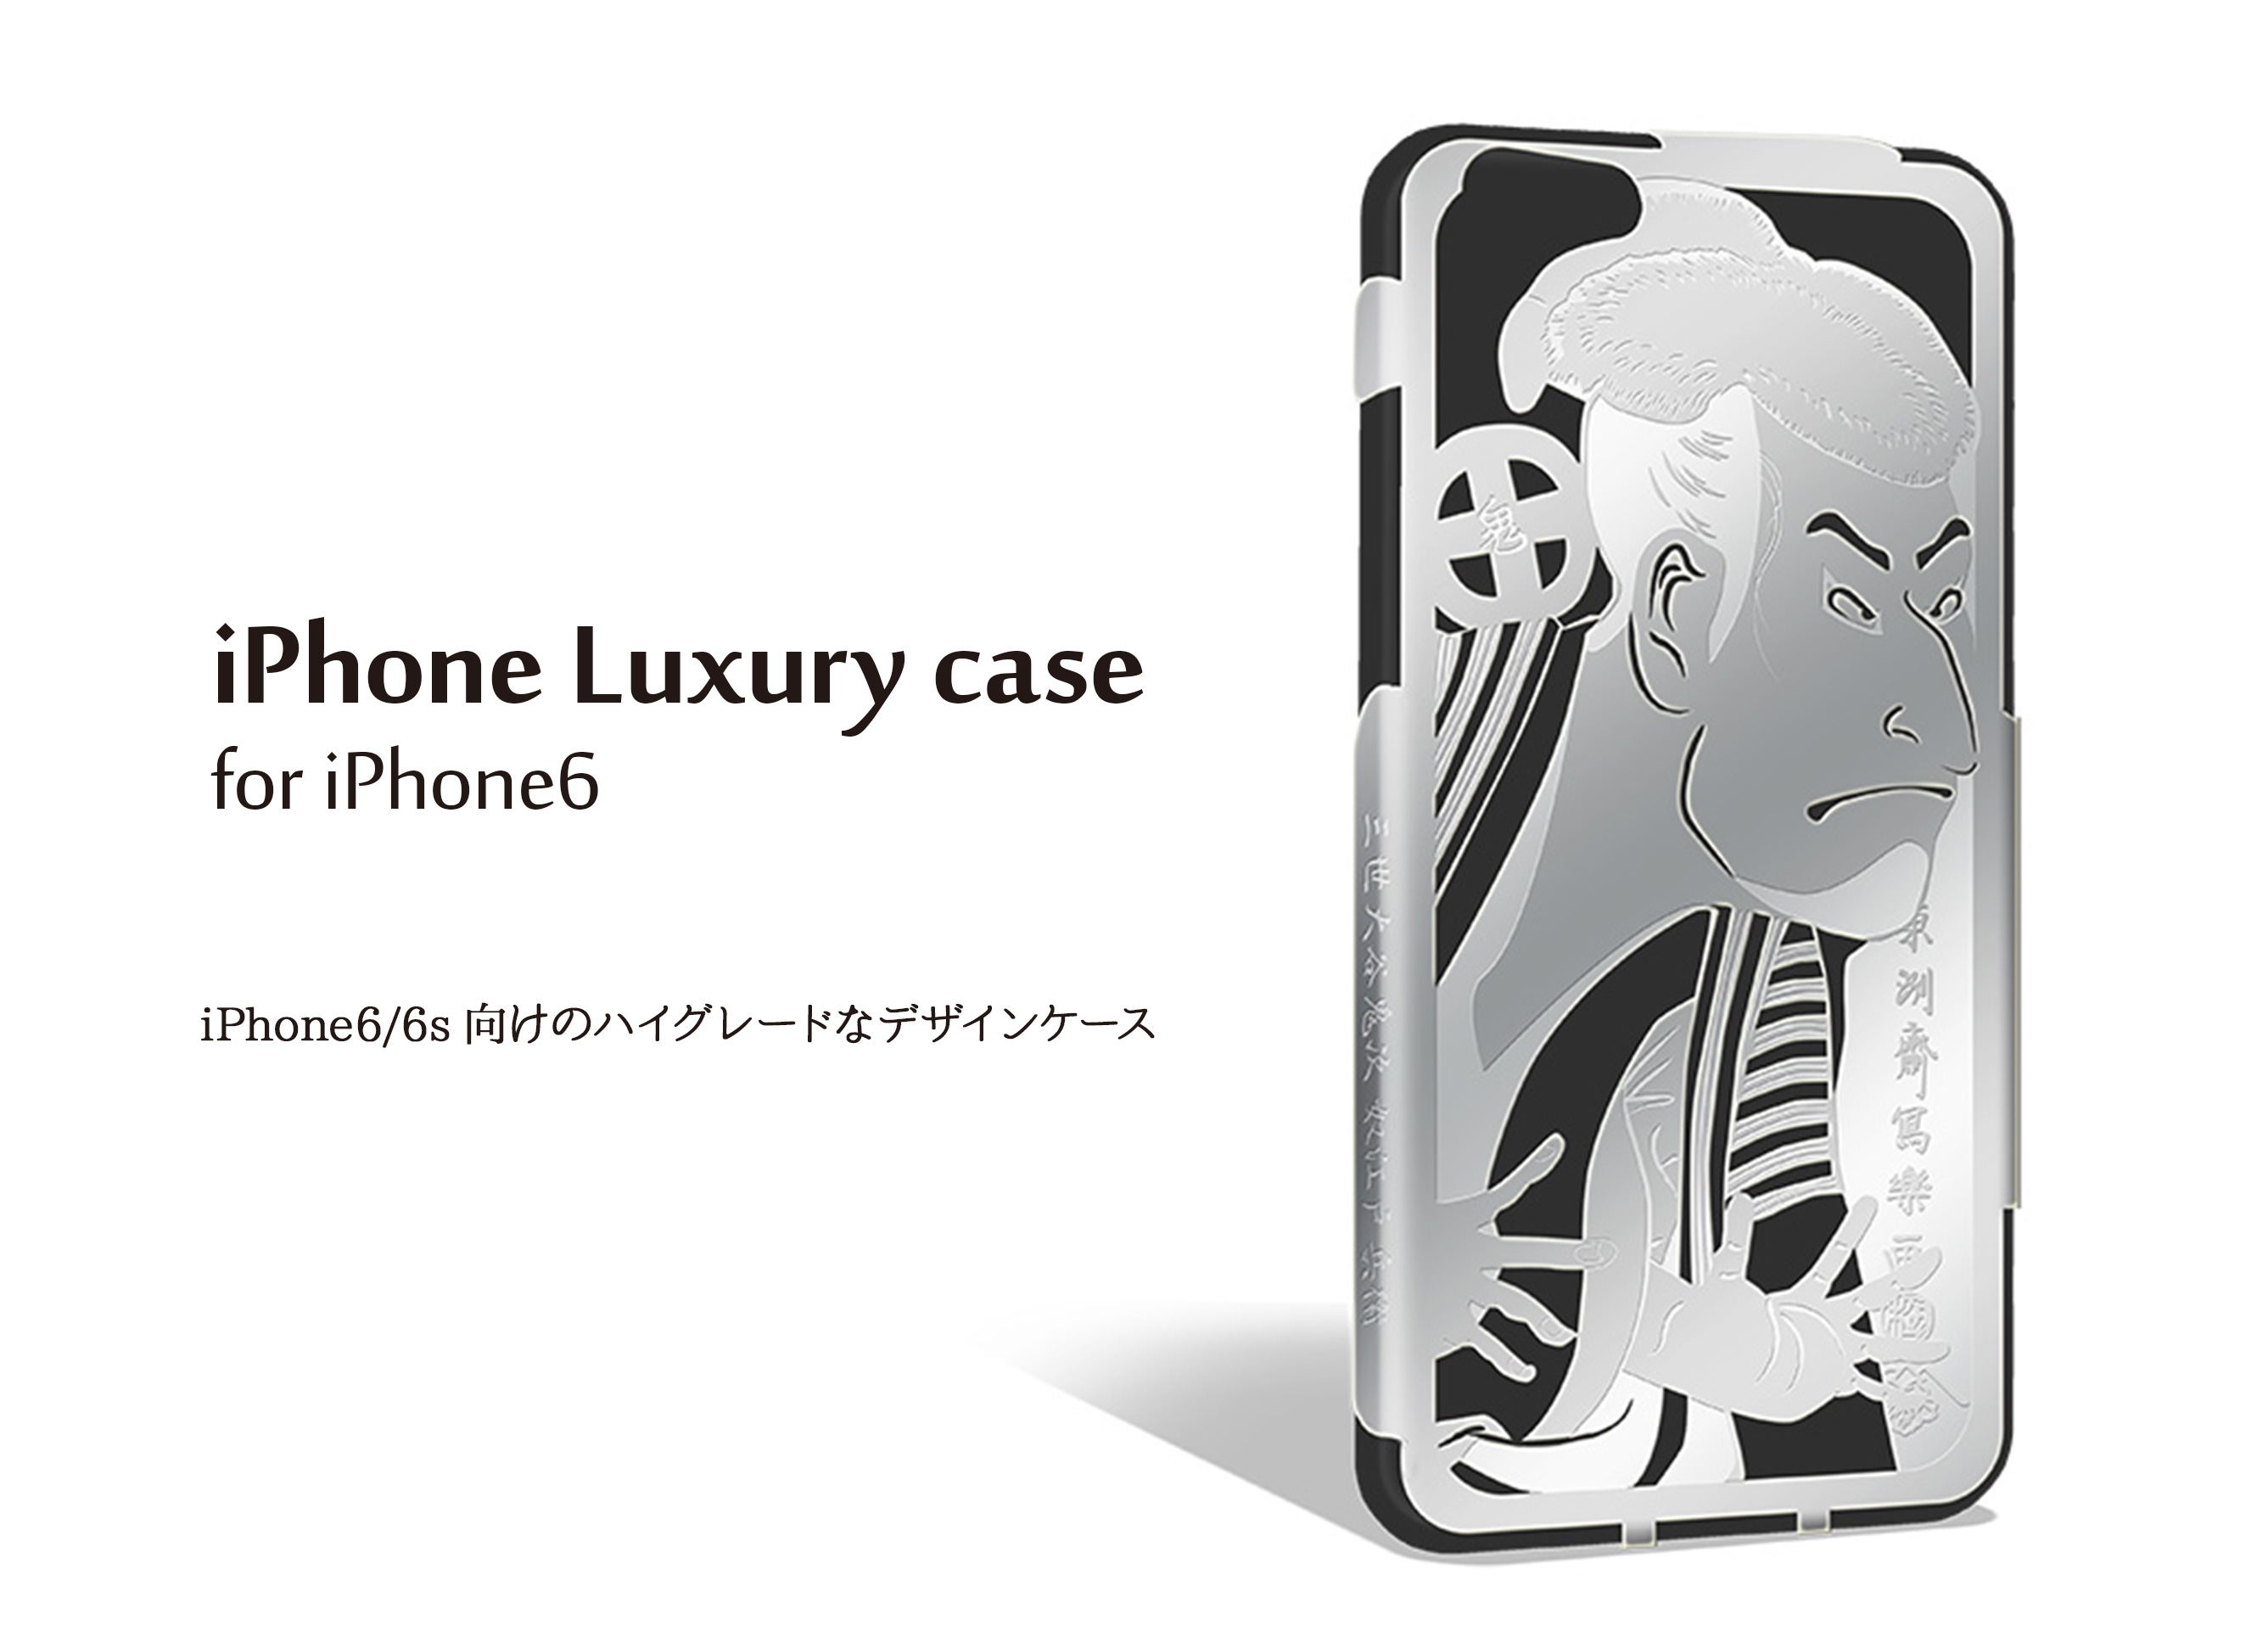 20160314-iphone6case1.jpg